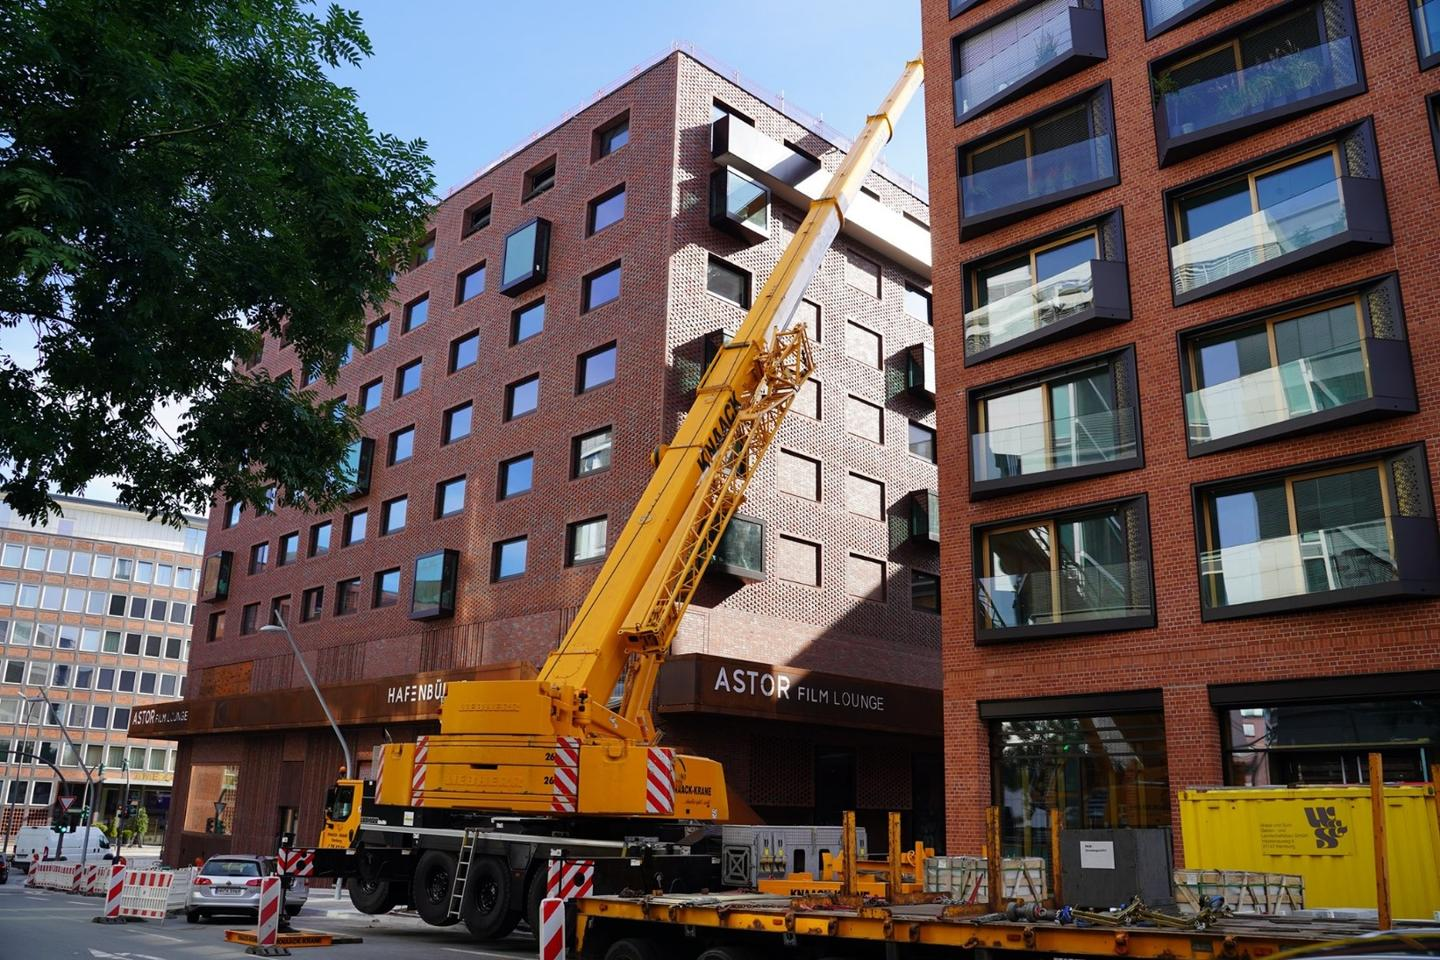 The Pierdrei crew used a 140-tonne crane to lift the three Dethleffs Coco trailers onto the roof